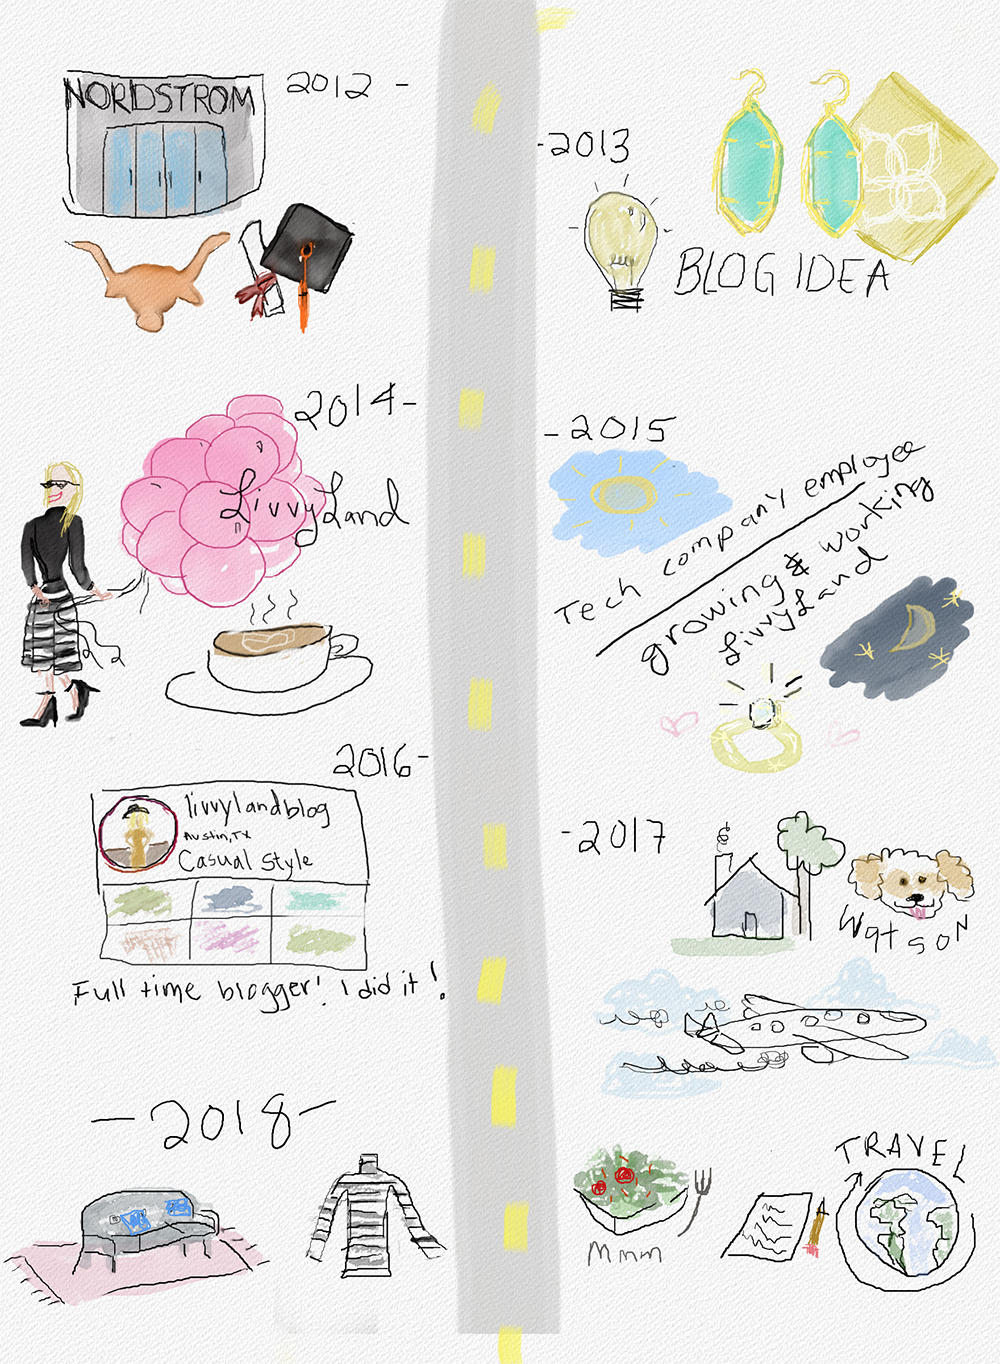 livvyland-blog-olivia-watson-road-illustration-timeline-map-2018-goals-content-ideas